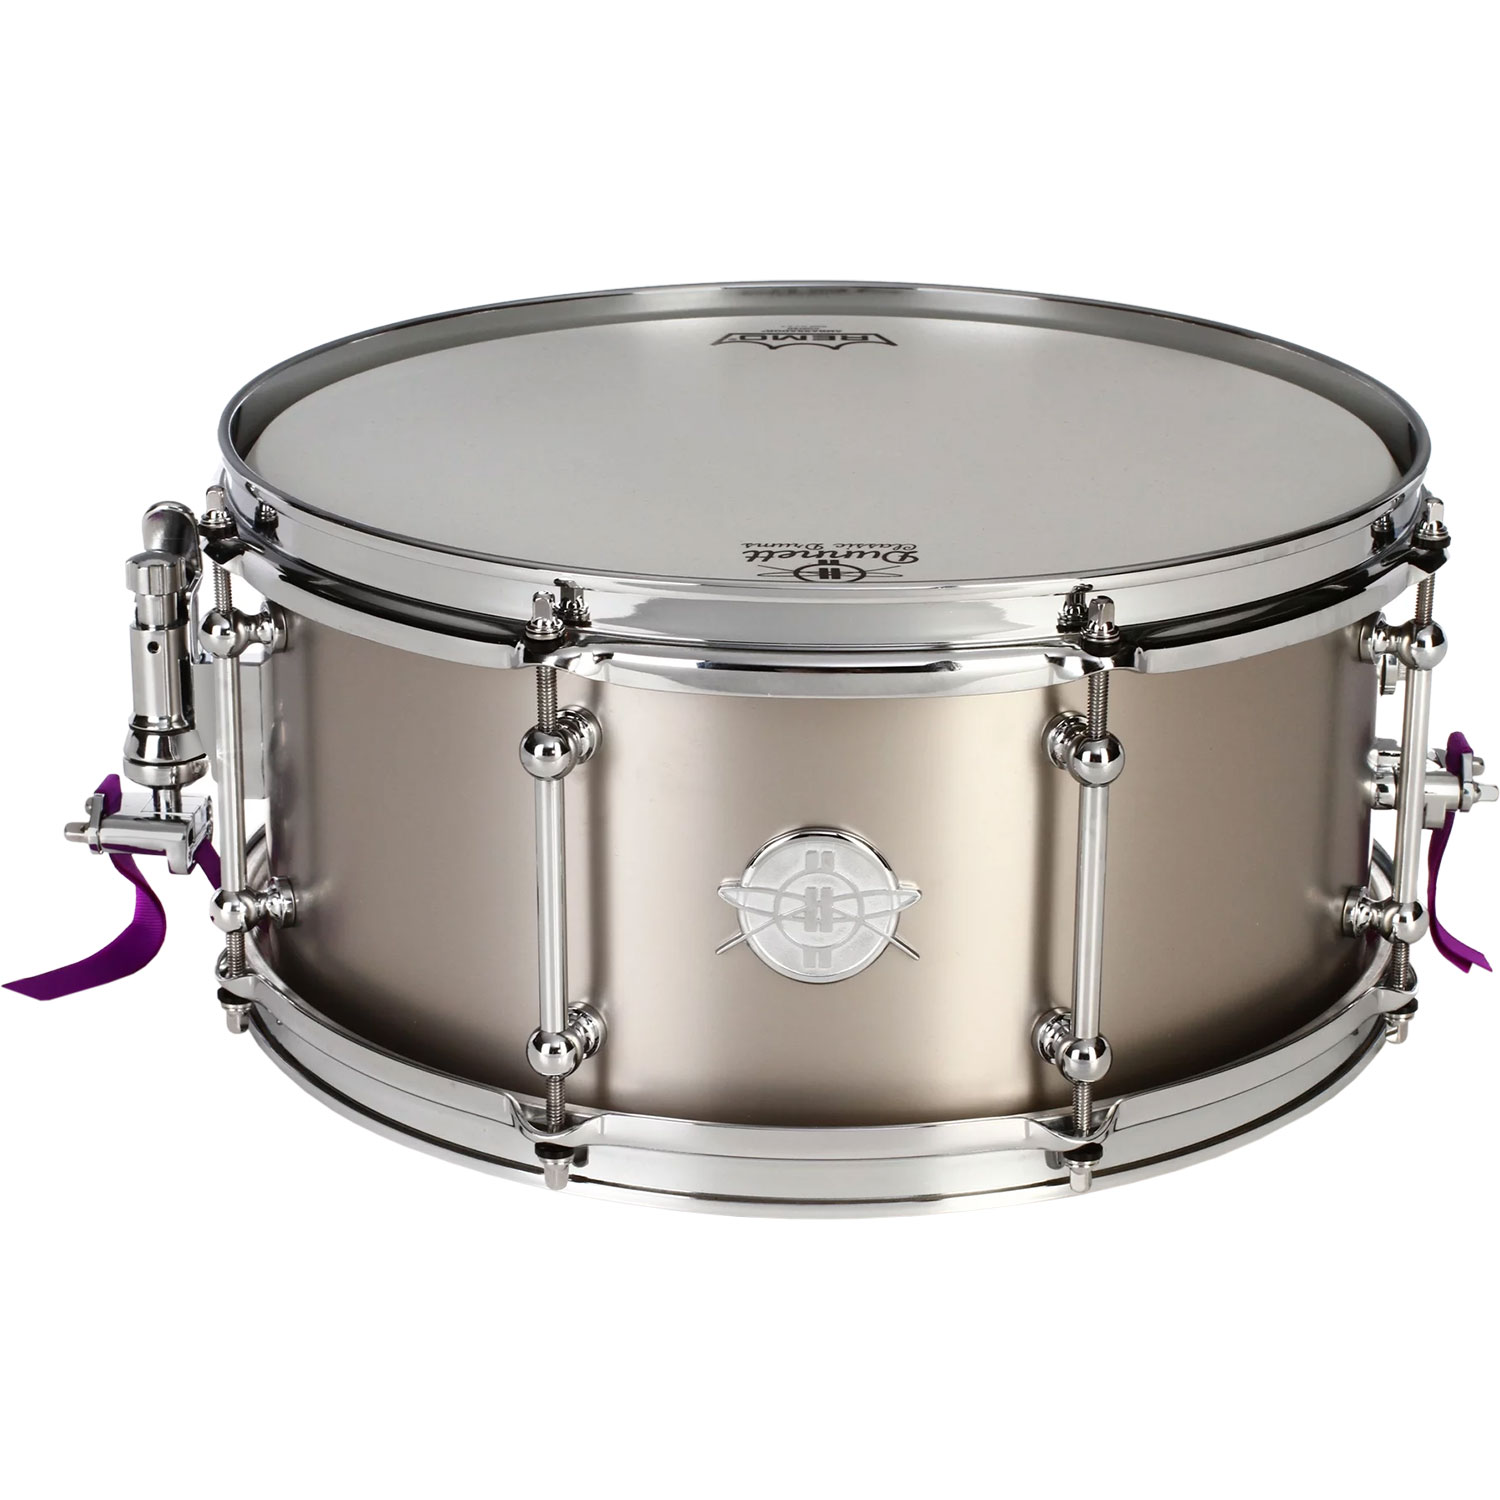 "Dunnett 14"" x 6.5"" Classic Titanium Snare Drum in Raw Finish"